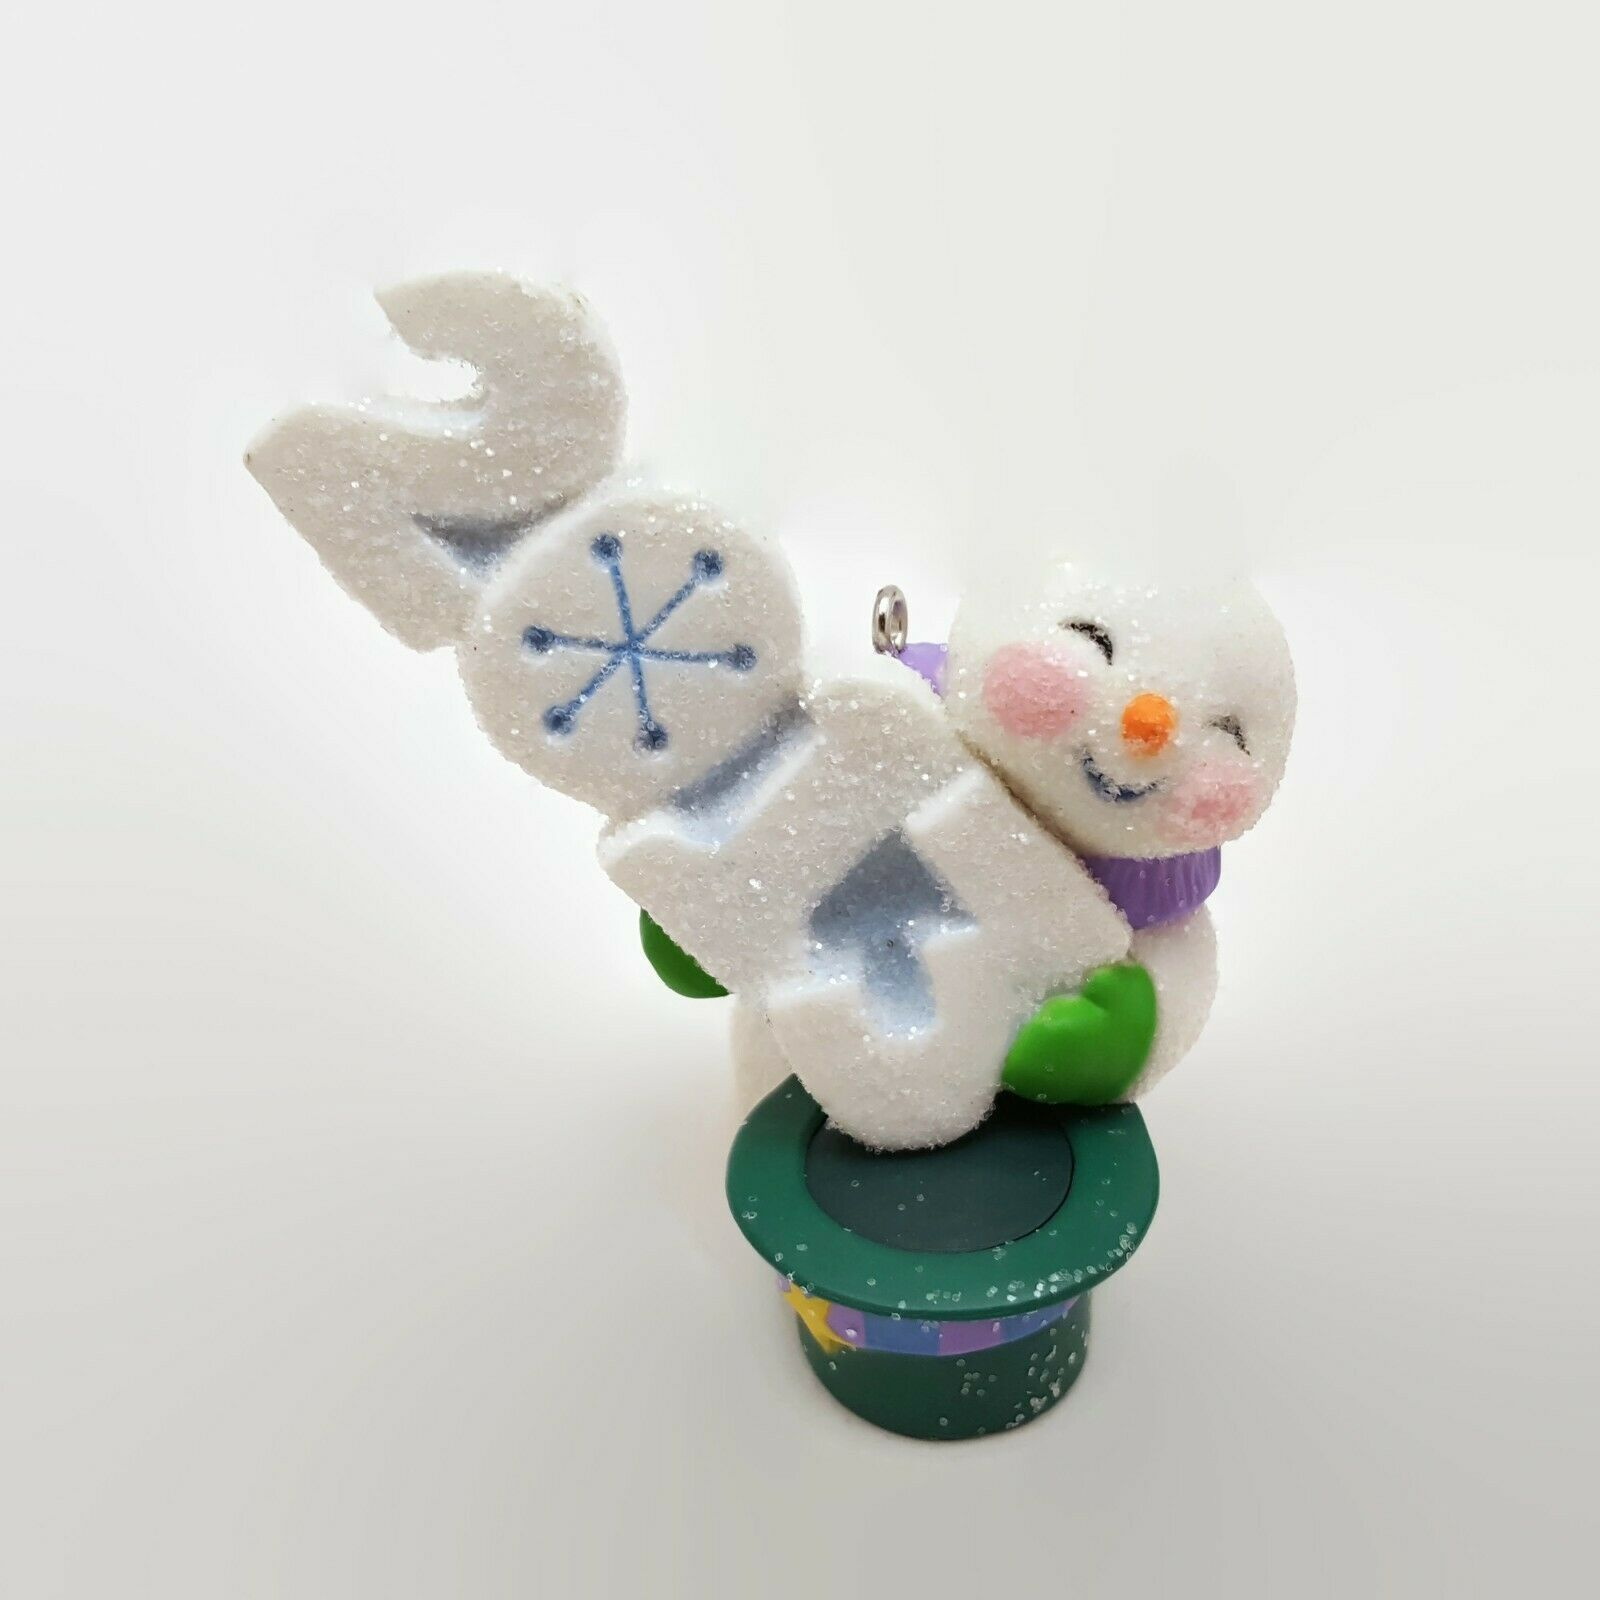 Primary image for Hallmark 2013 Keepsake Ornament Frosty Fun Decade